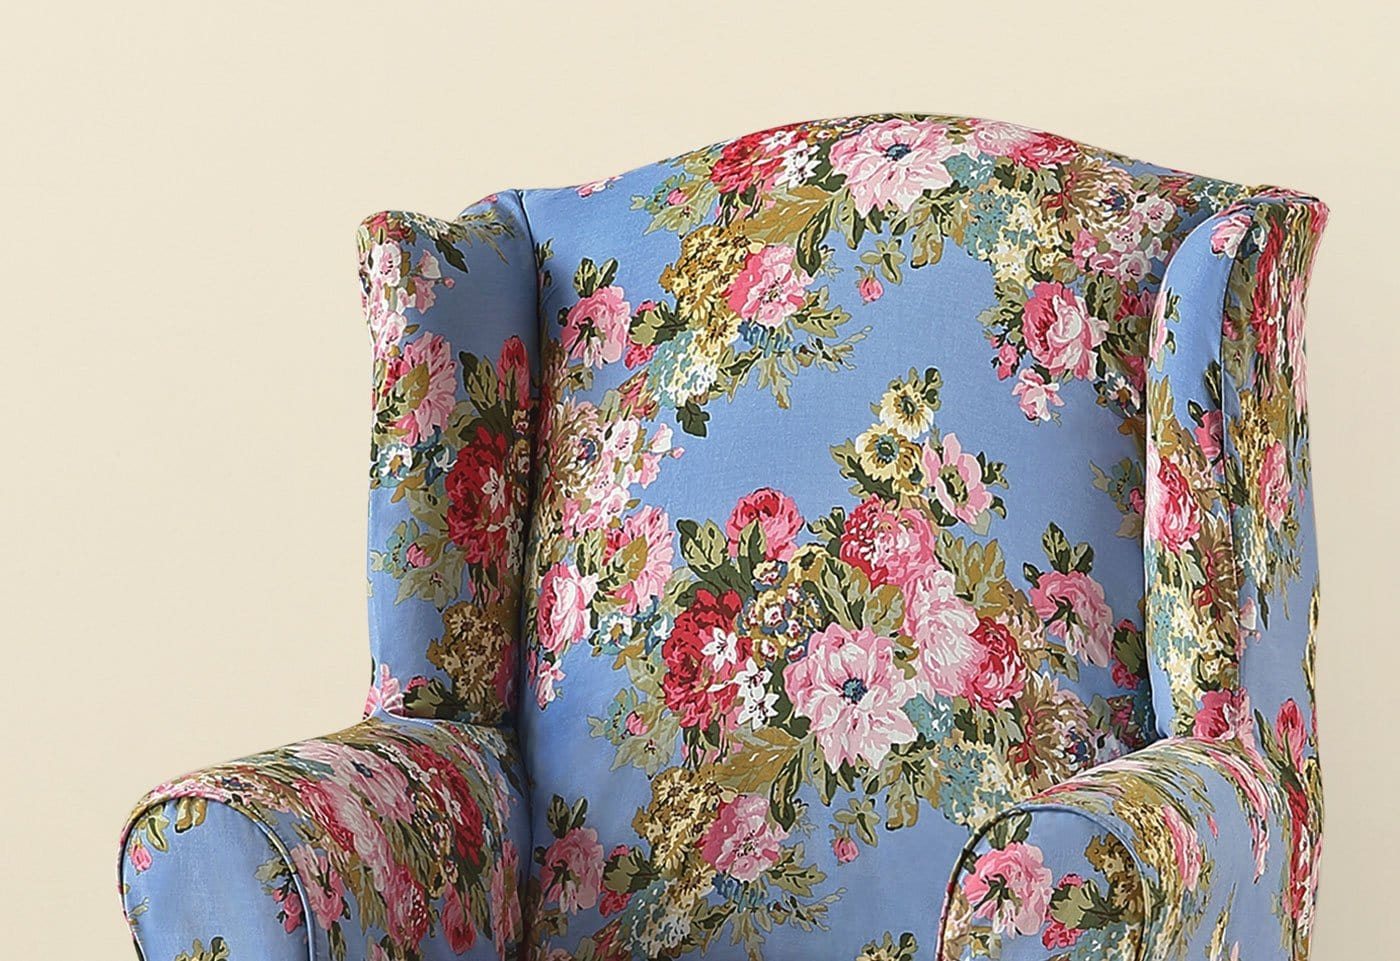 Juliet By Waverly One Piece Wing Chair Slipcover | SureFit